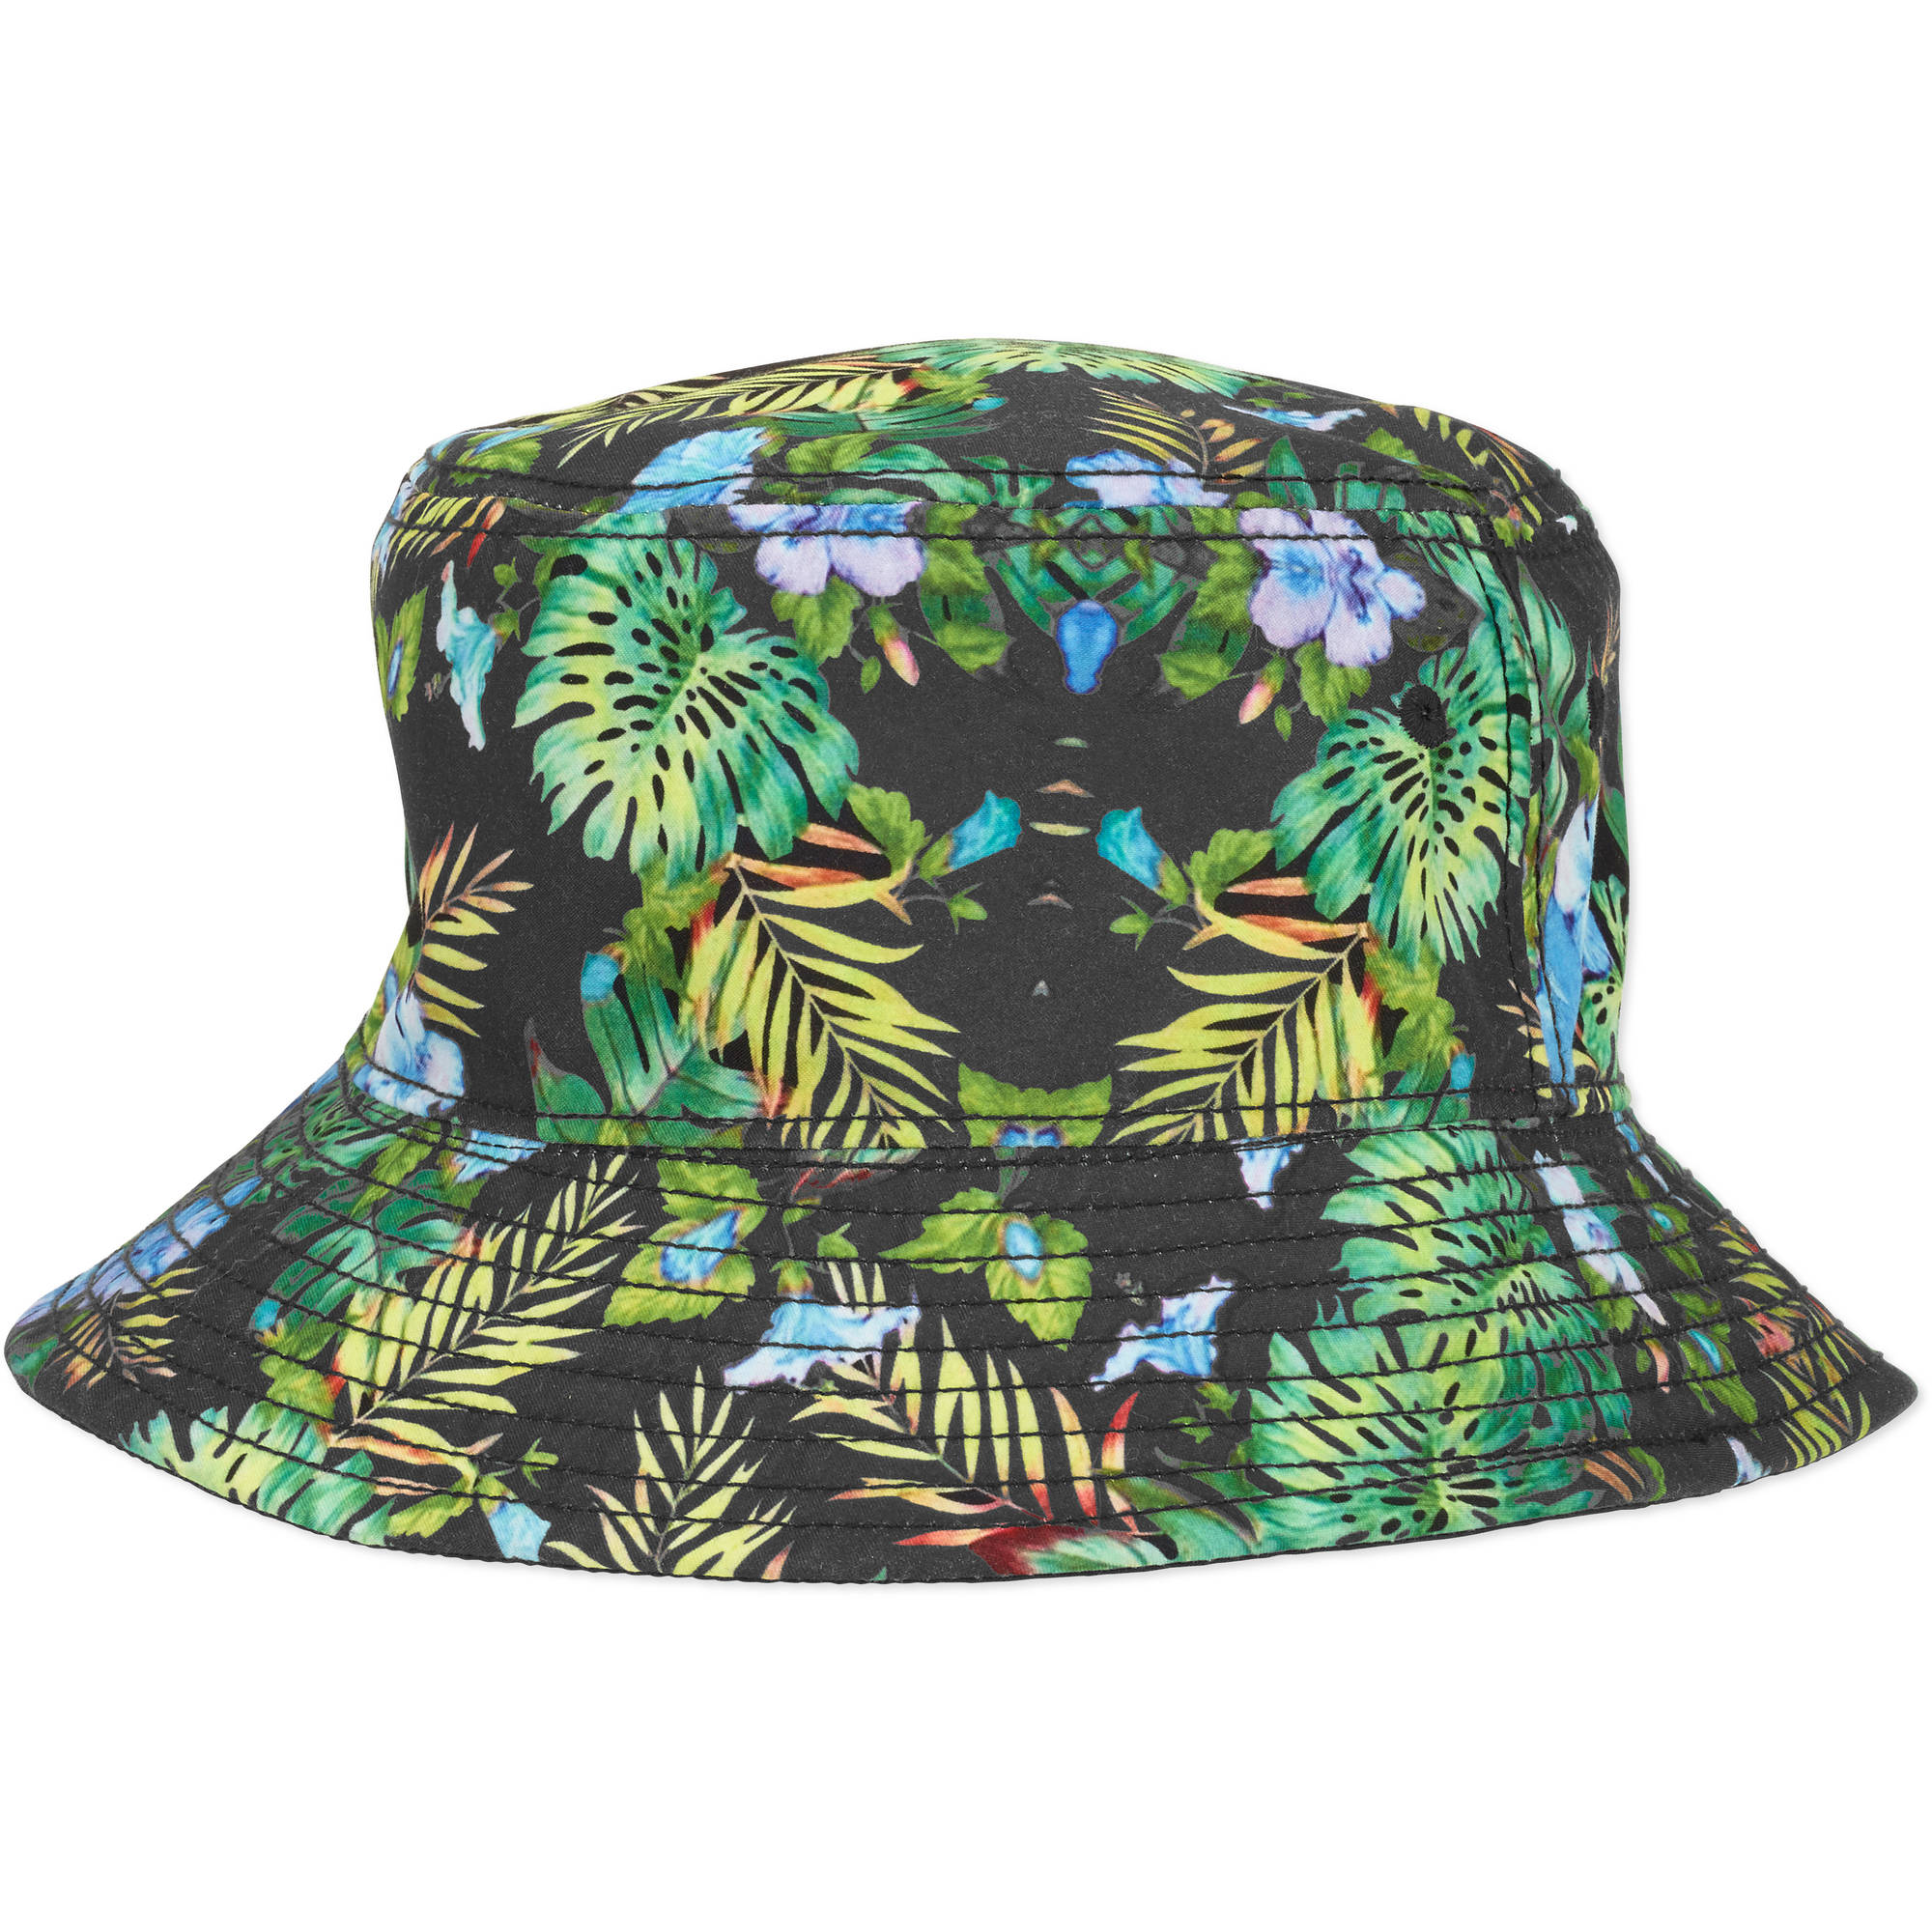 Men's Floral Bucket Hat